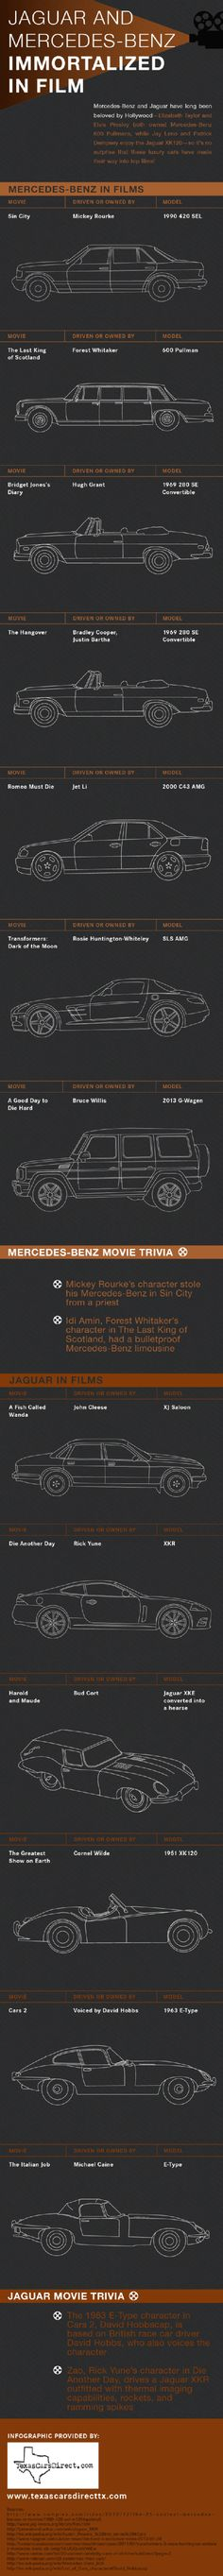 Forest Whitaker's character in The Last King of Scotland had a bulletproof Mercedes-Benz limousine. This is just one example of how the Mercedes-Ben